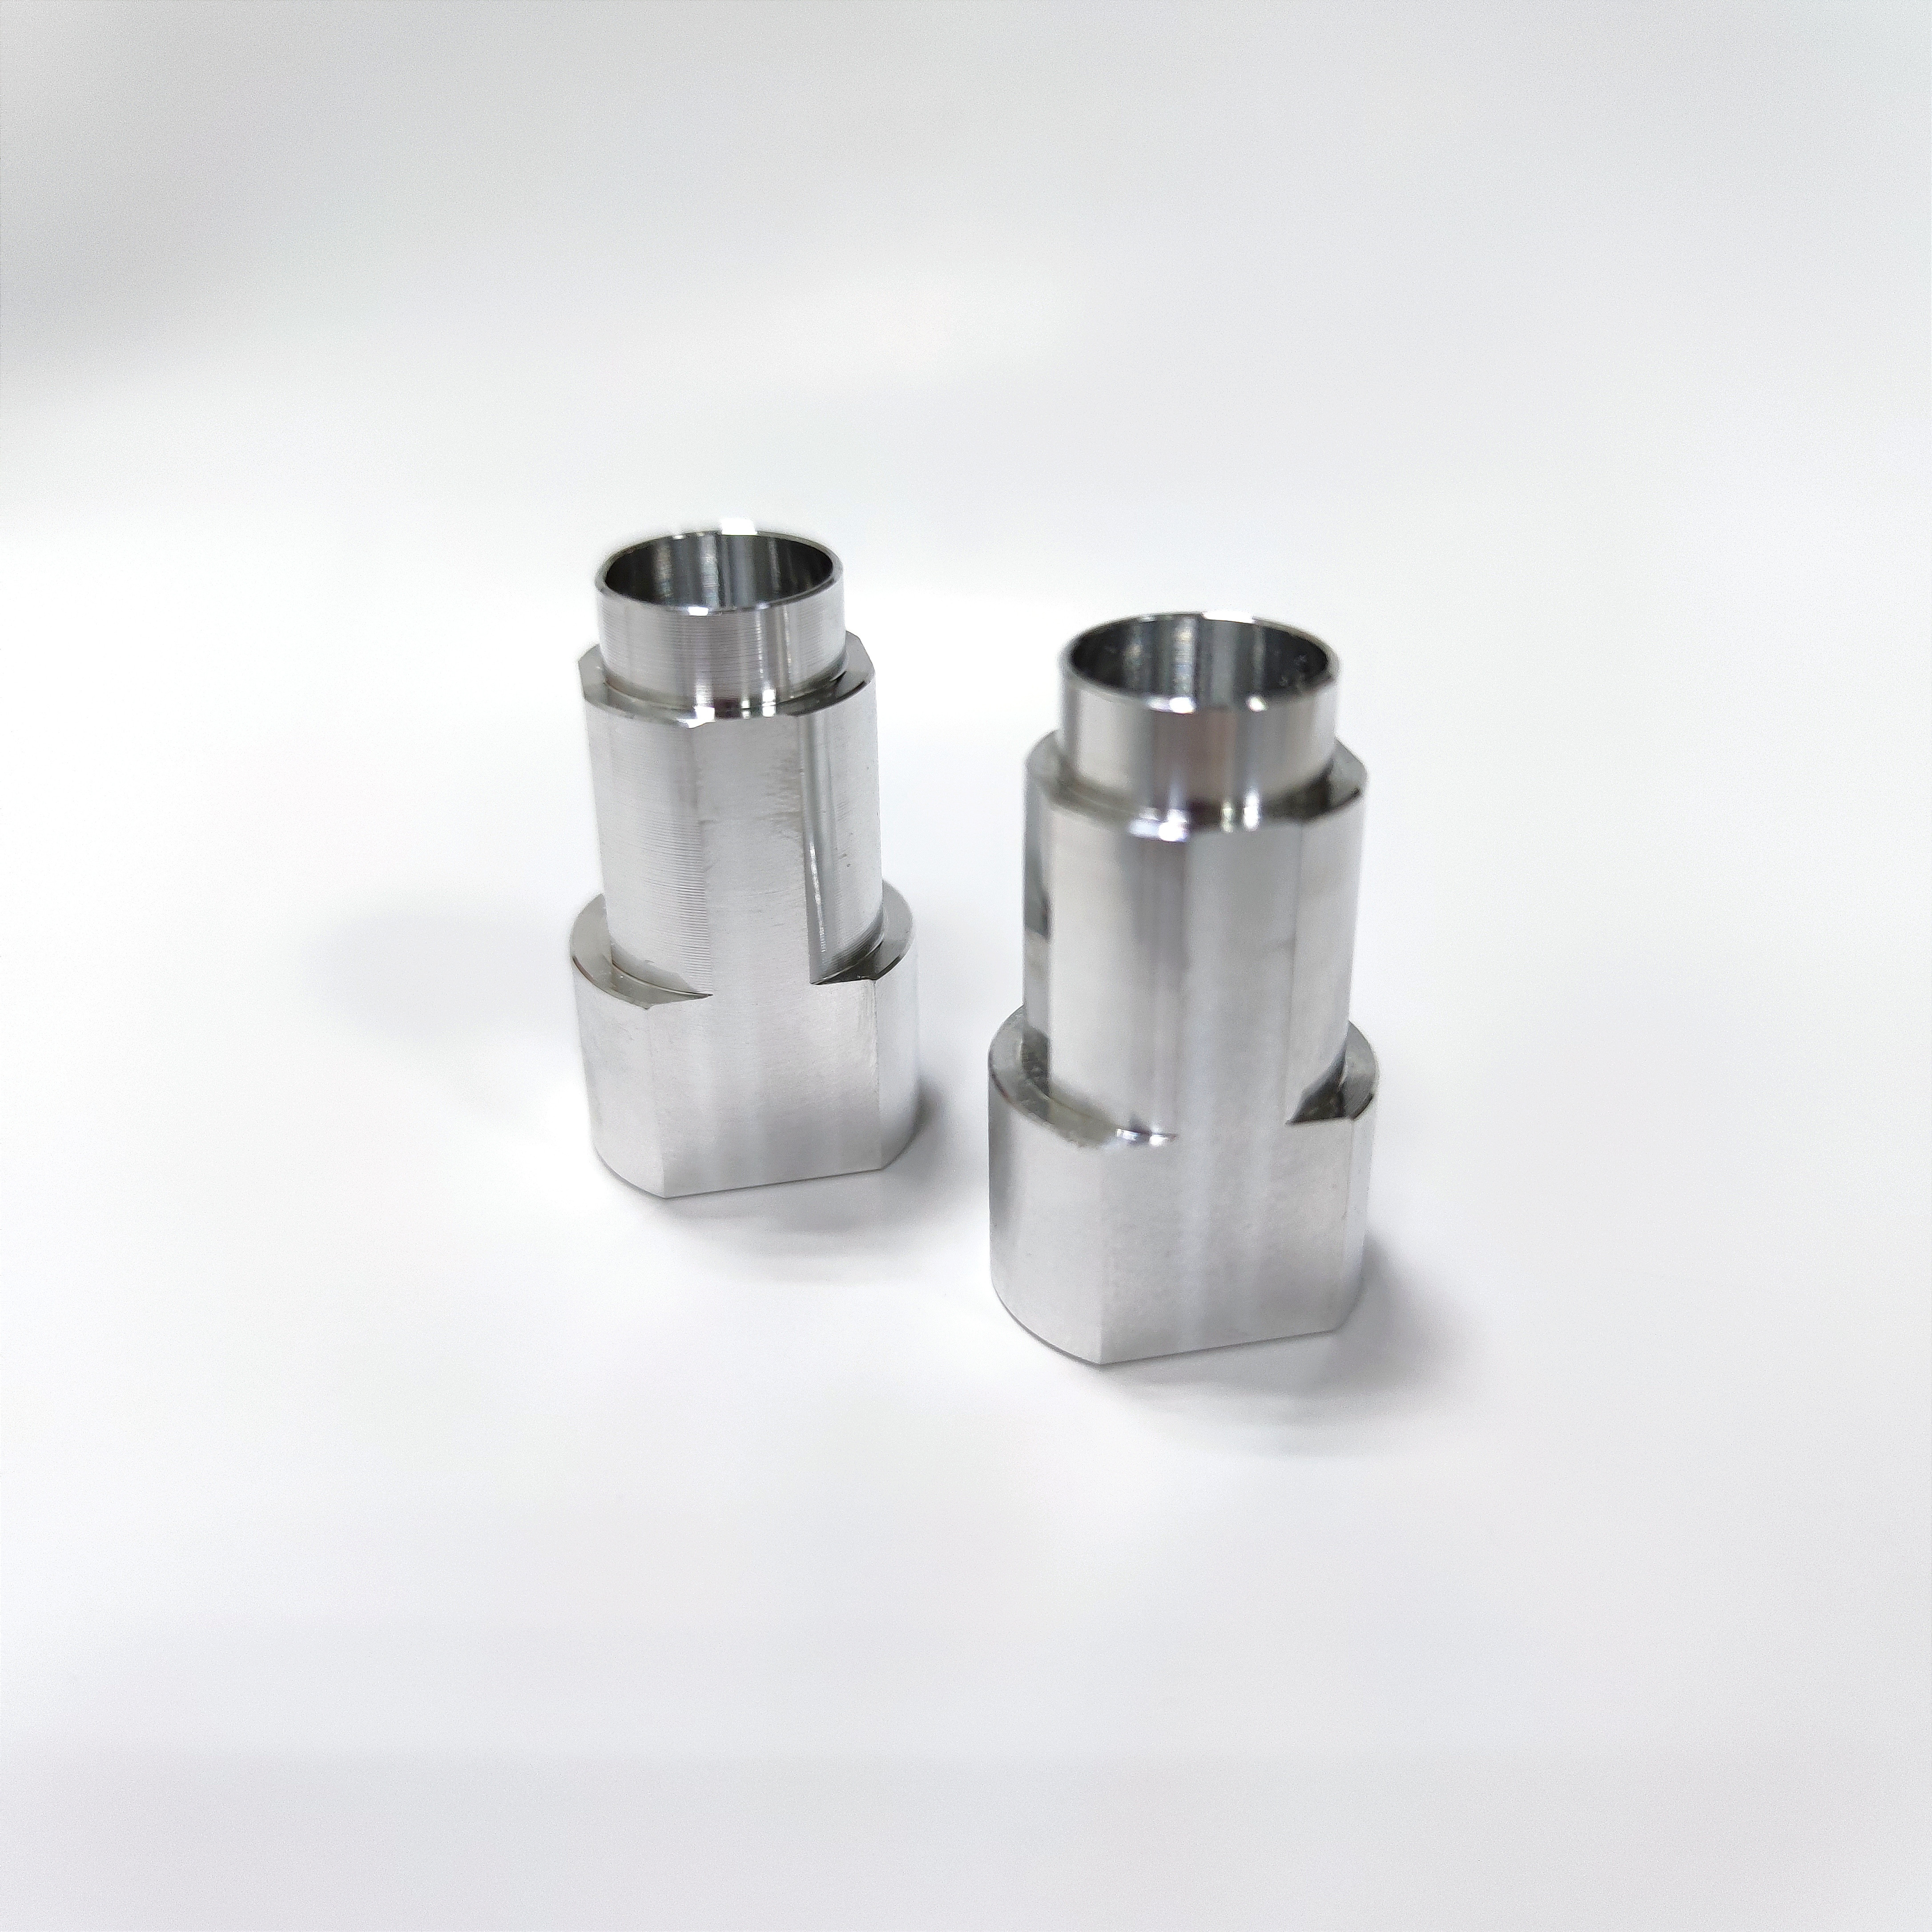 Iron Stainless steel Hardware Connecting Bolts CNC Precision Machining CNC Turning Parts